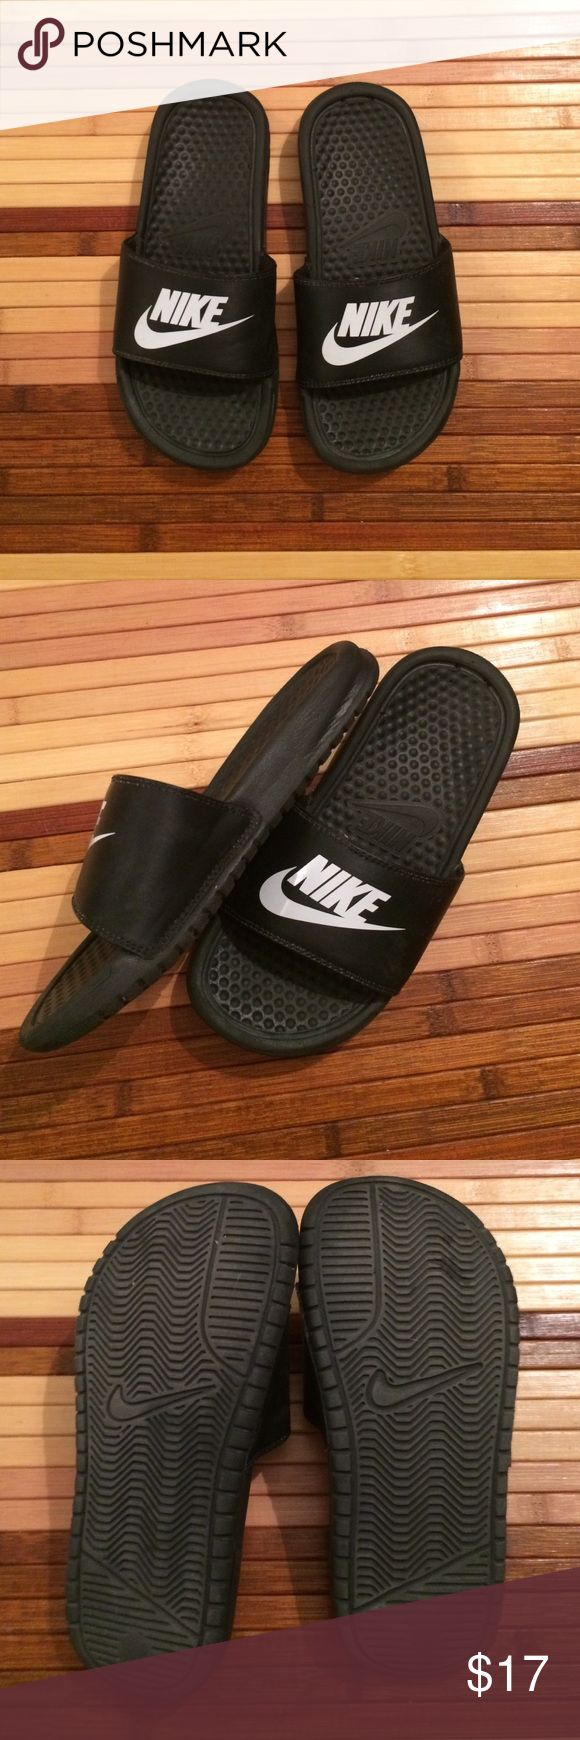 Kids Nike Slides Boys or girls Nike shoes! Great year round in the summer or winter after a ball game! Gently used.  Nike Shoes Sandals & Flip Flops